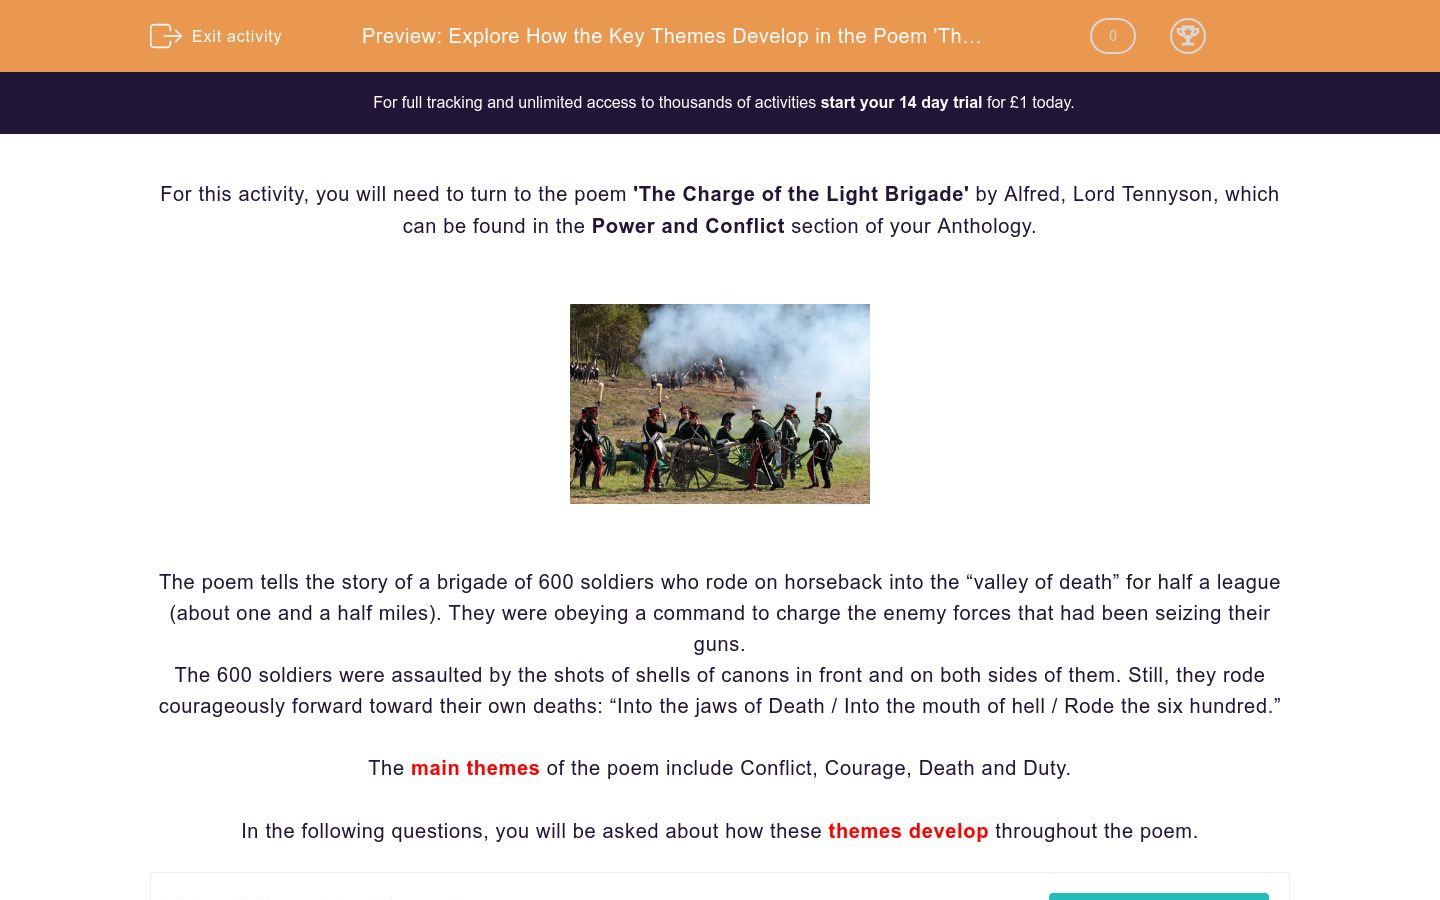 'Explore How the Key Themes Develop in the Poem 'The Charge of the Light Brigade' by Alfred Lord Tennyson' worksheet